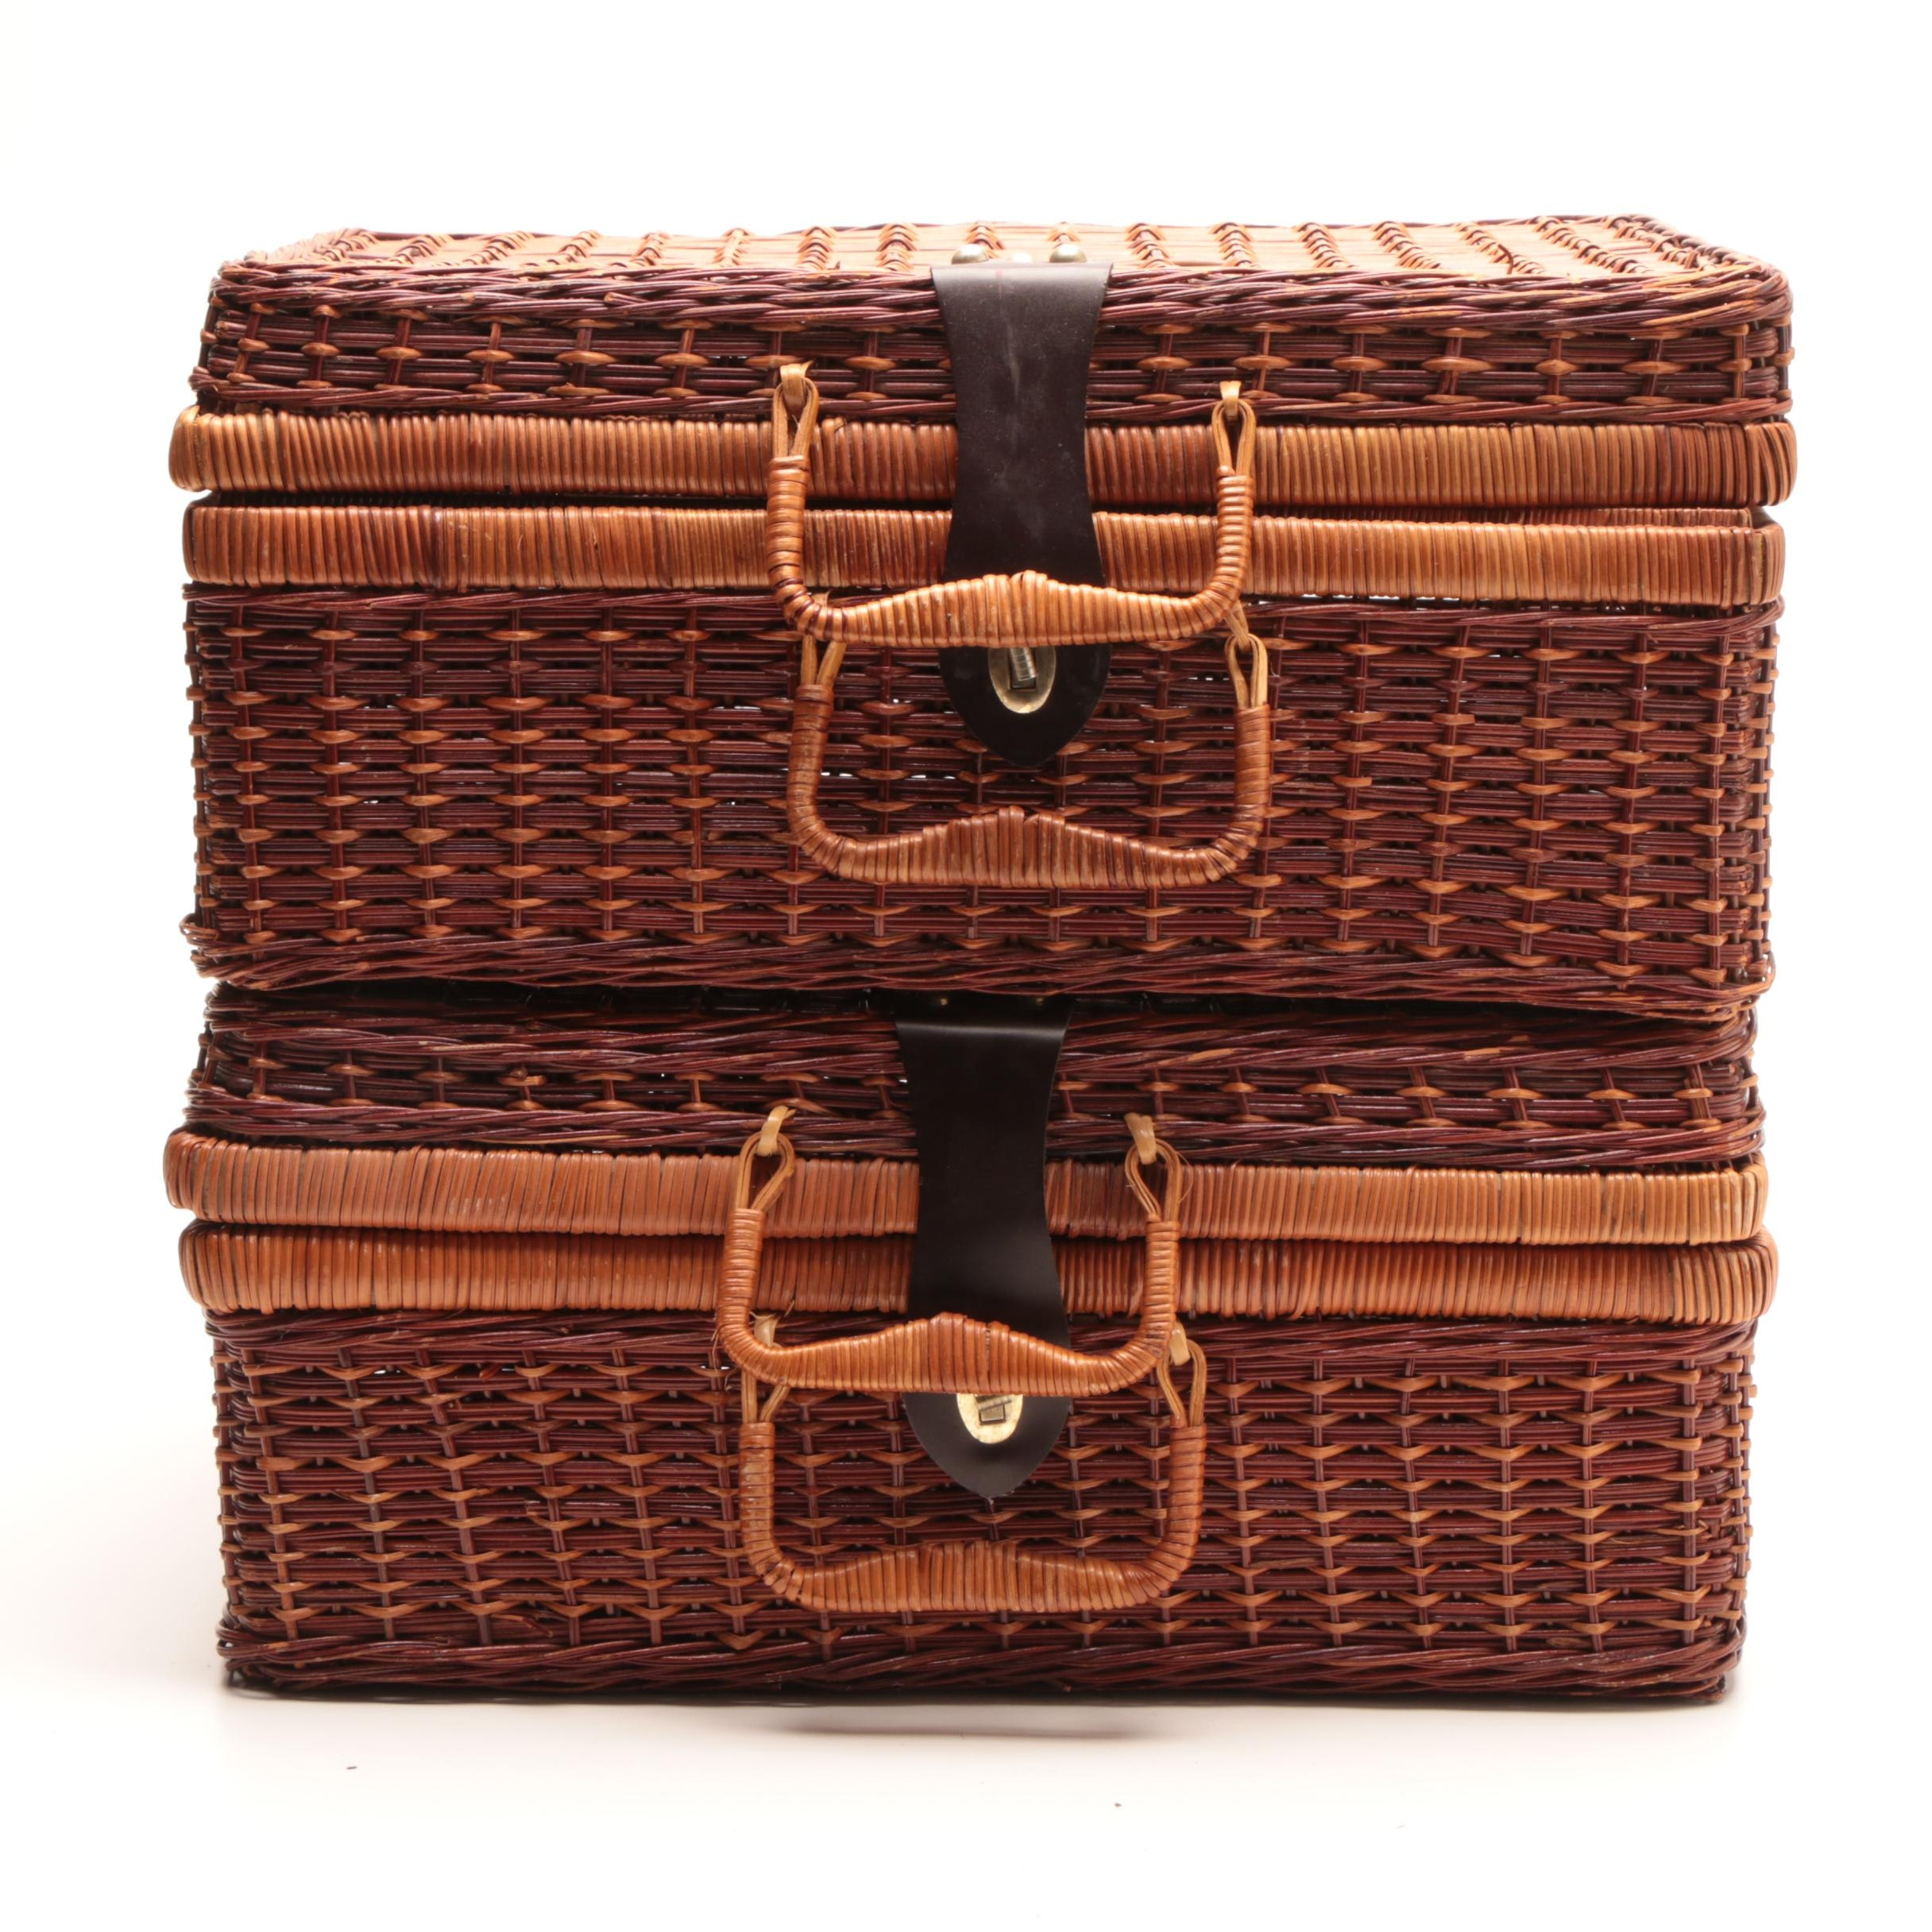 Trunk Style Woven Wooden Baskets with Handles